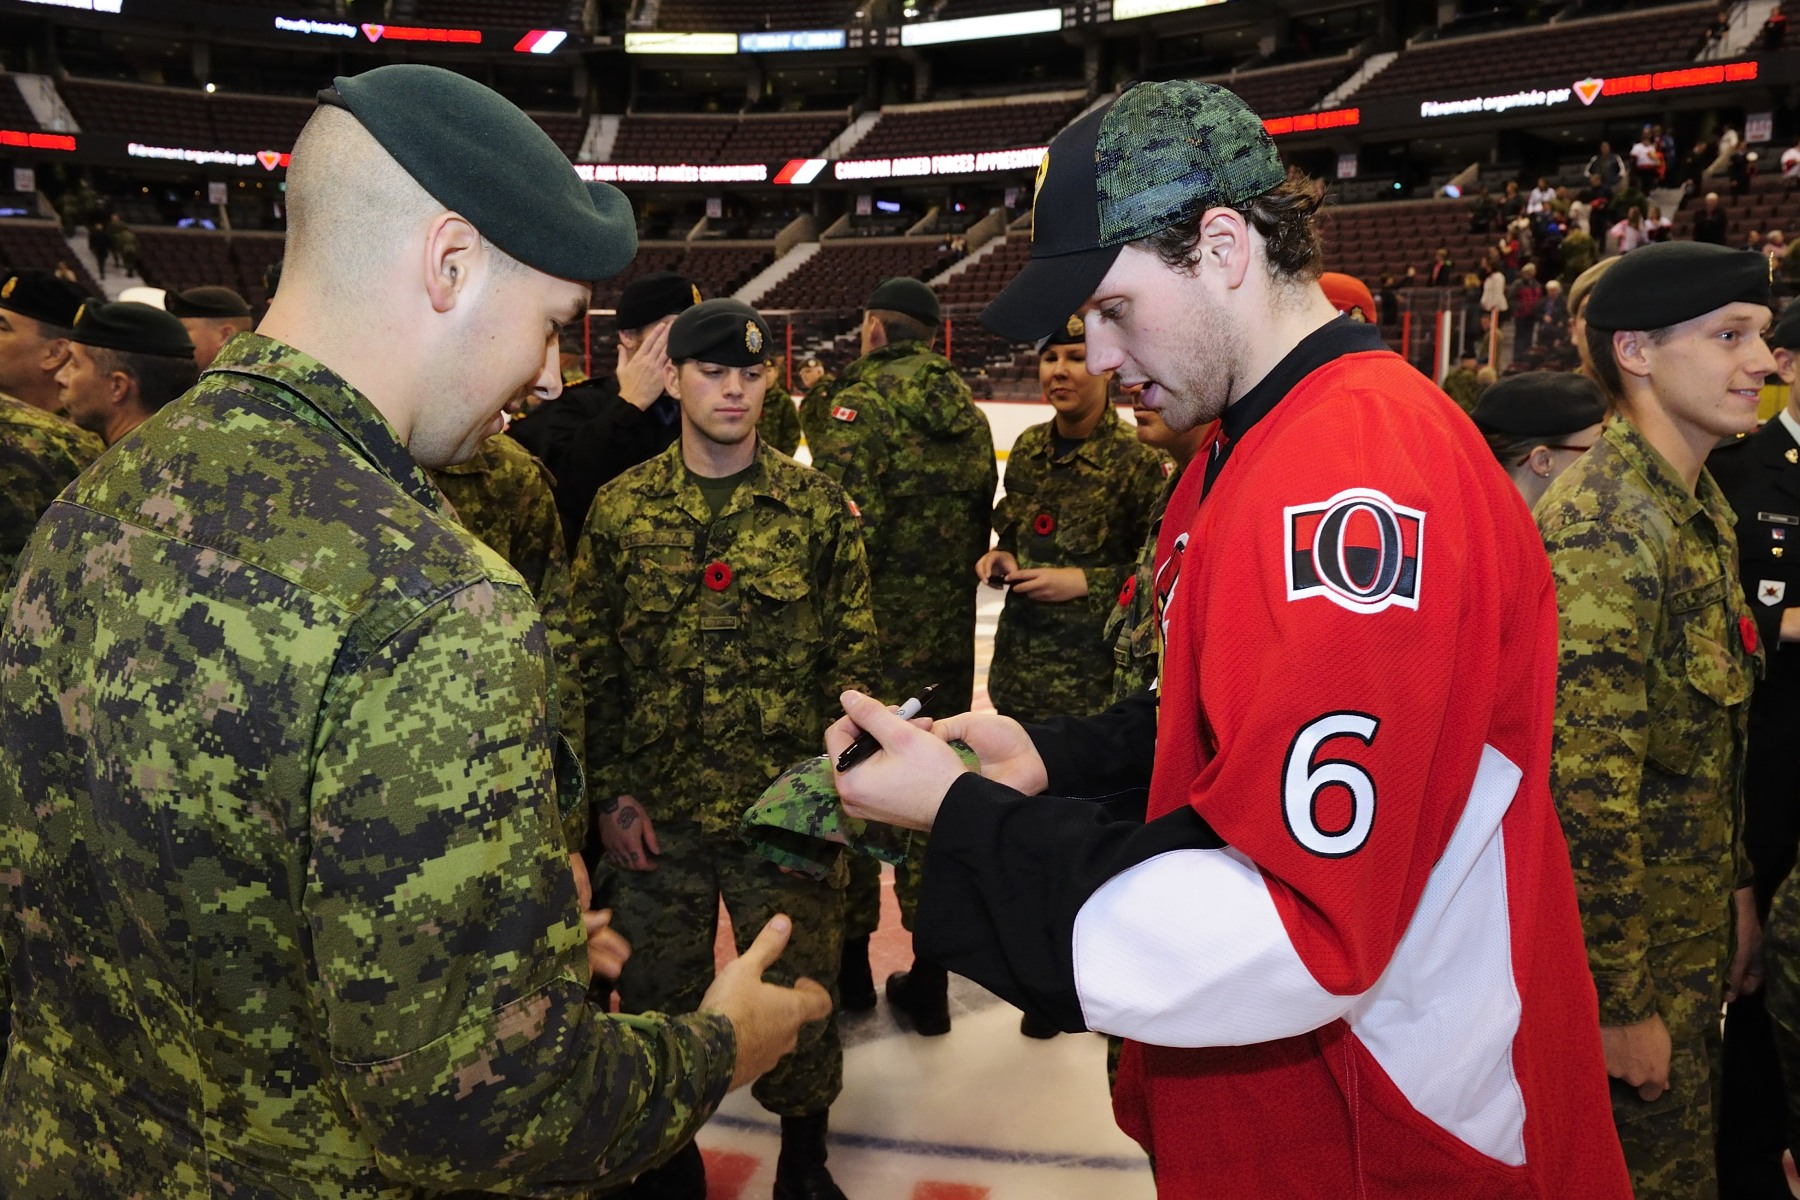 Canadian Forces Appreciation Night is an annual event that publicly thanks and recognizes the soldiers, sailors, airmen and airwomen of our Canadian Armed Forces. Ottawa Senators player Bobby Ryan signed autographs to Canadian Armed Forces members.